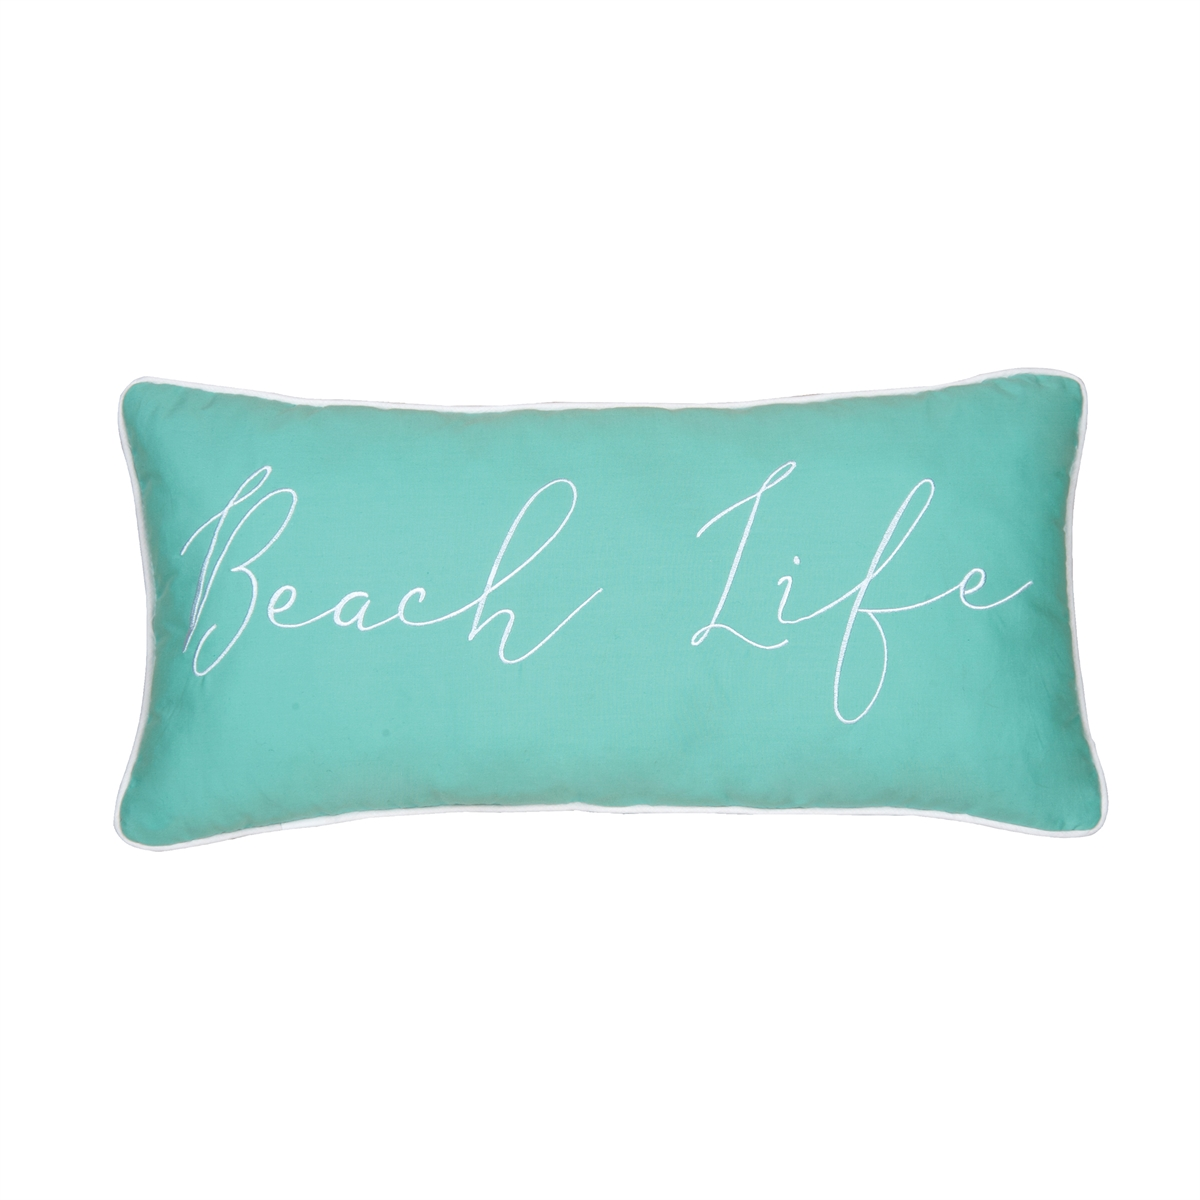 Beach Life Embroidered Pillow